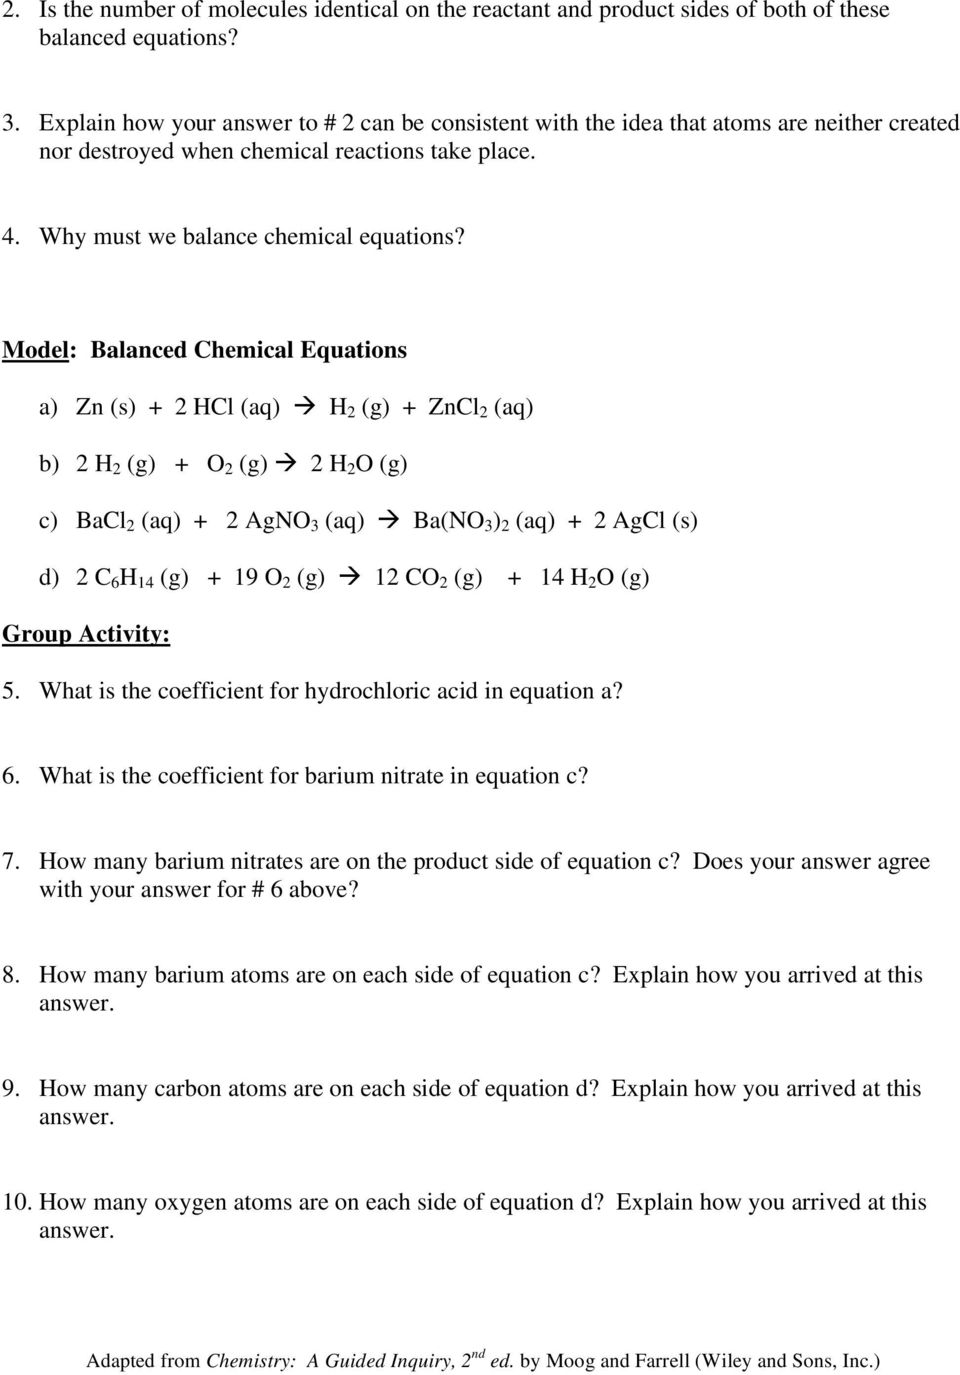 chemical equations and stoichiometry worksheet - Termolak